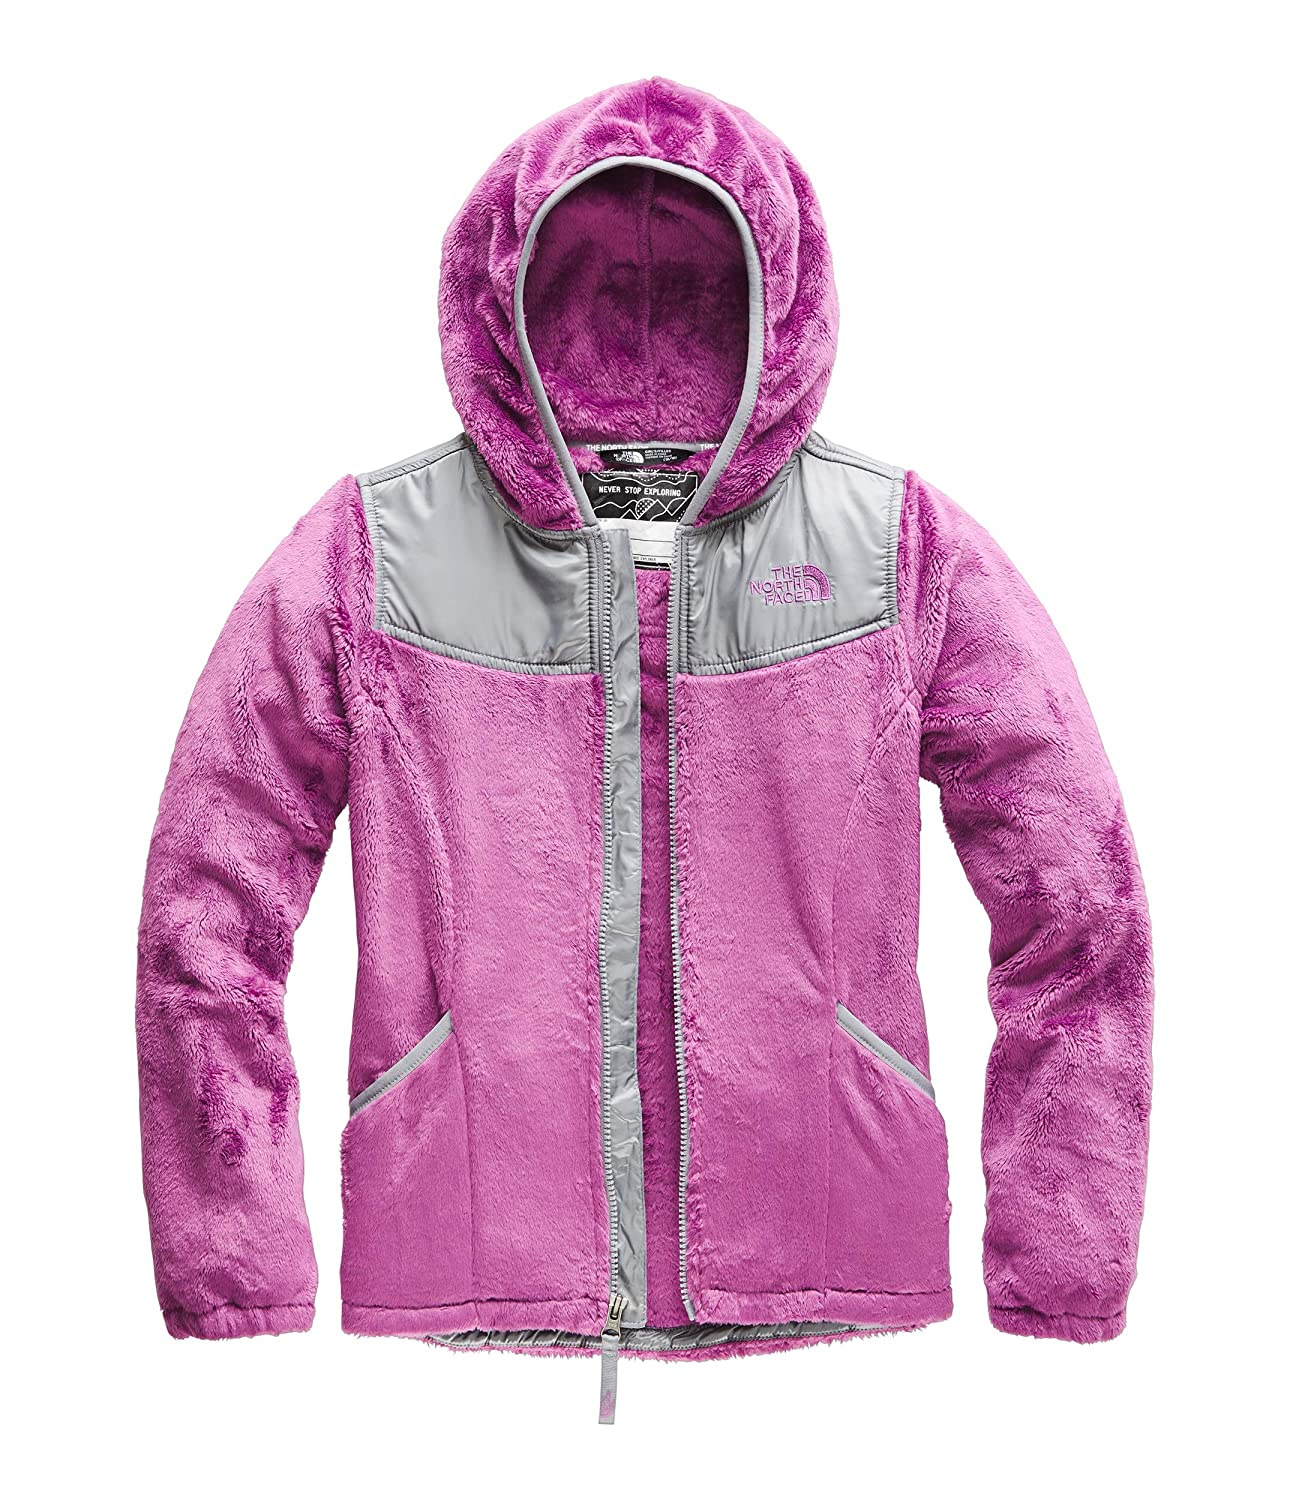 Amazon.com: The North Face oso sudadera con capucha para ...